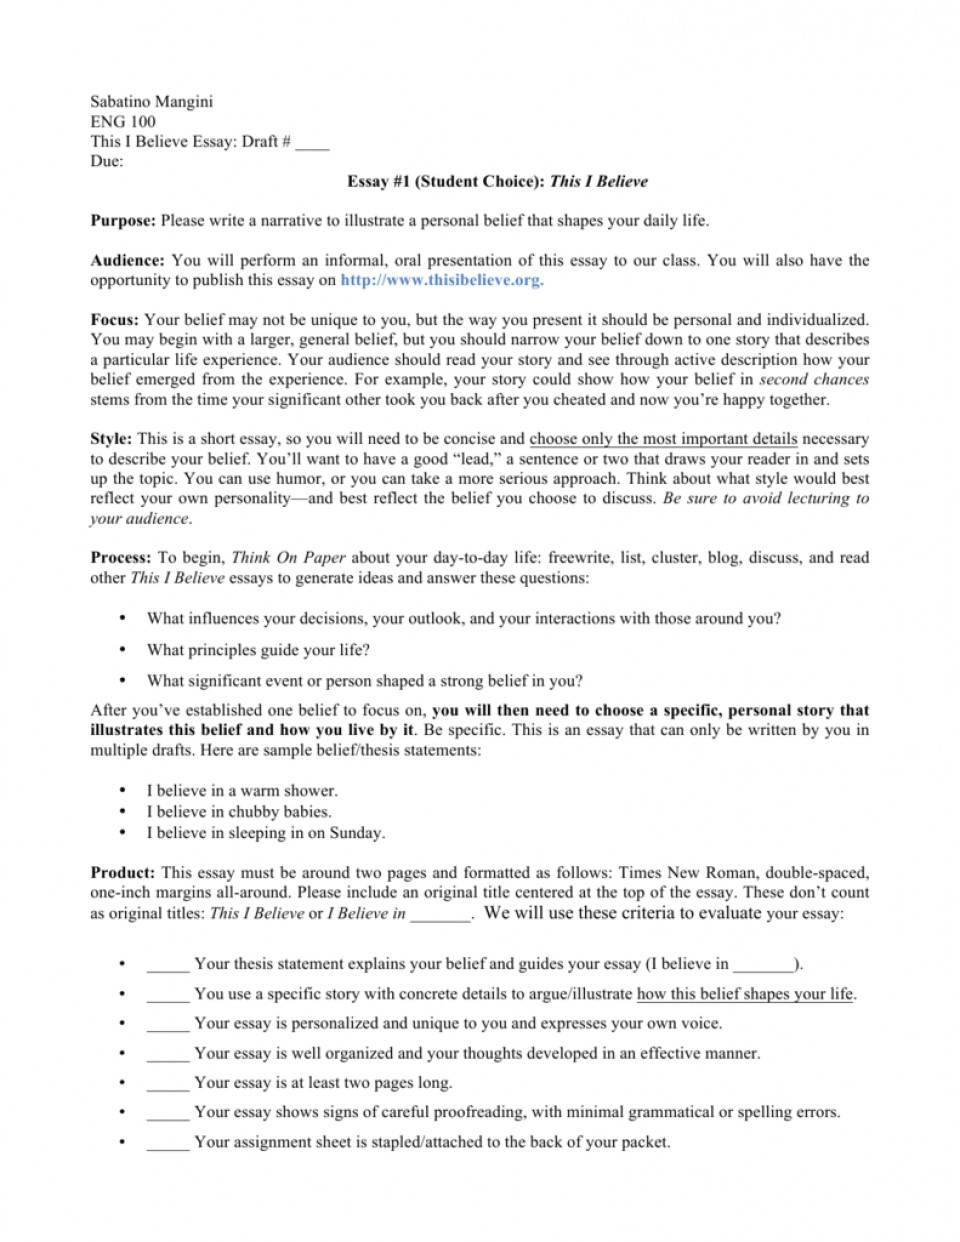 001 This I Believe Essay Example 008807227 1 Singular Rubric Essays Npr Format 960